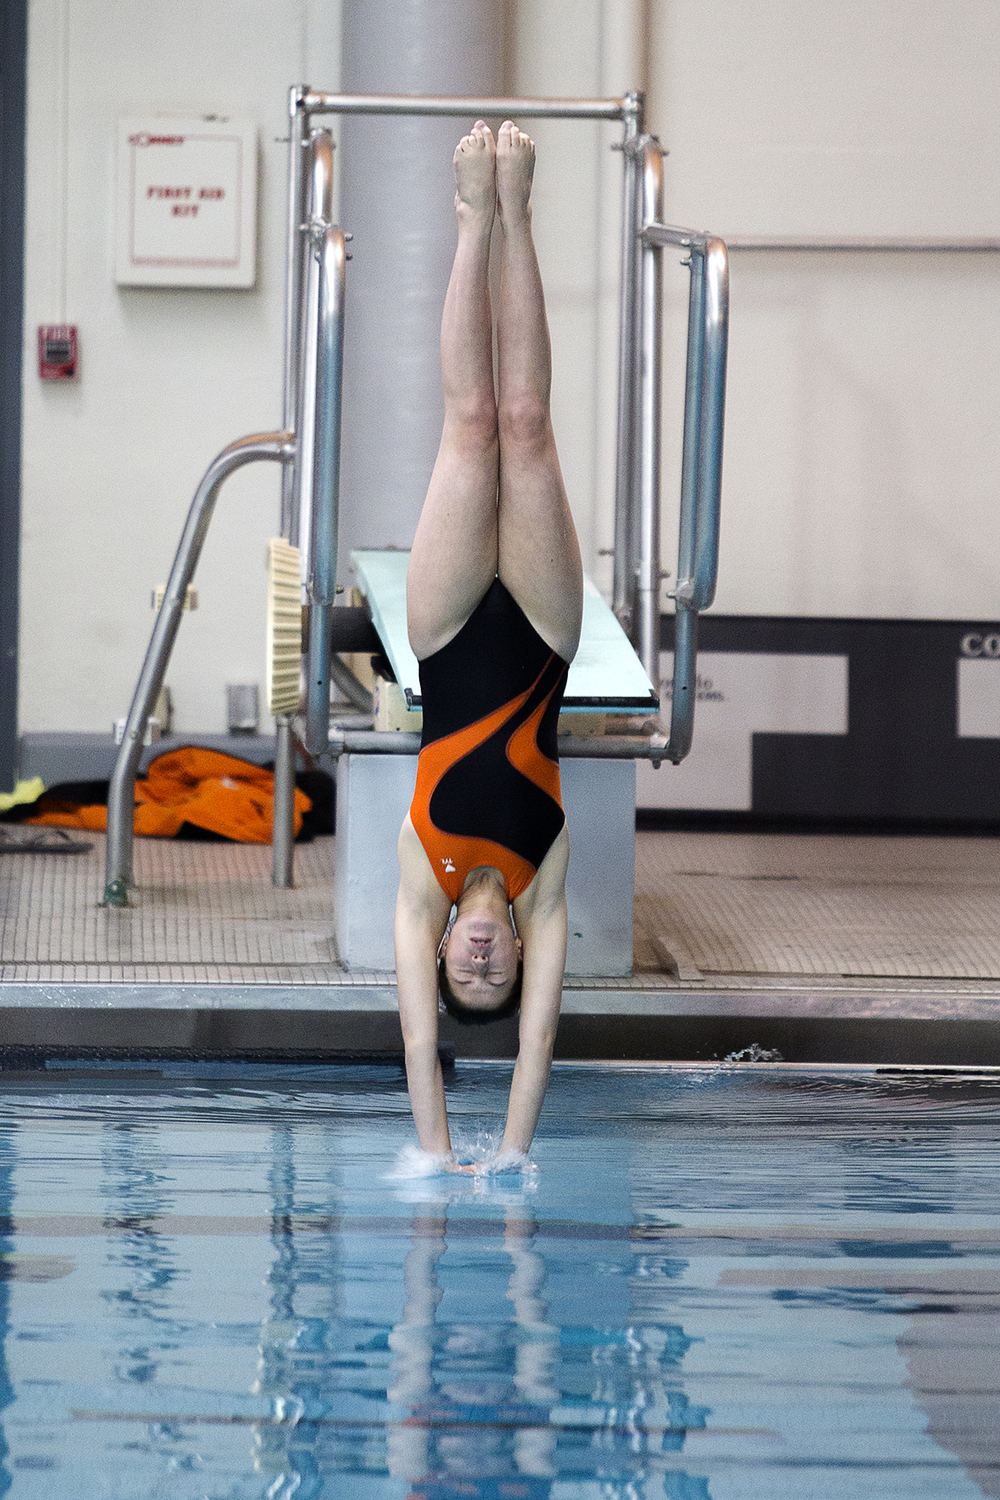 Nicole Lohn of Jackson dives in the Class 3A girls state swim and dive championship preliminary round Thursday at the Campbell County School District Aquatic Center. Lohn was one of 4 Jackson divers to place in the top 6 in the semi-finals.